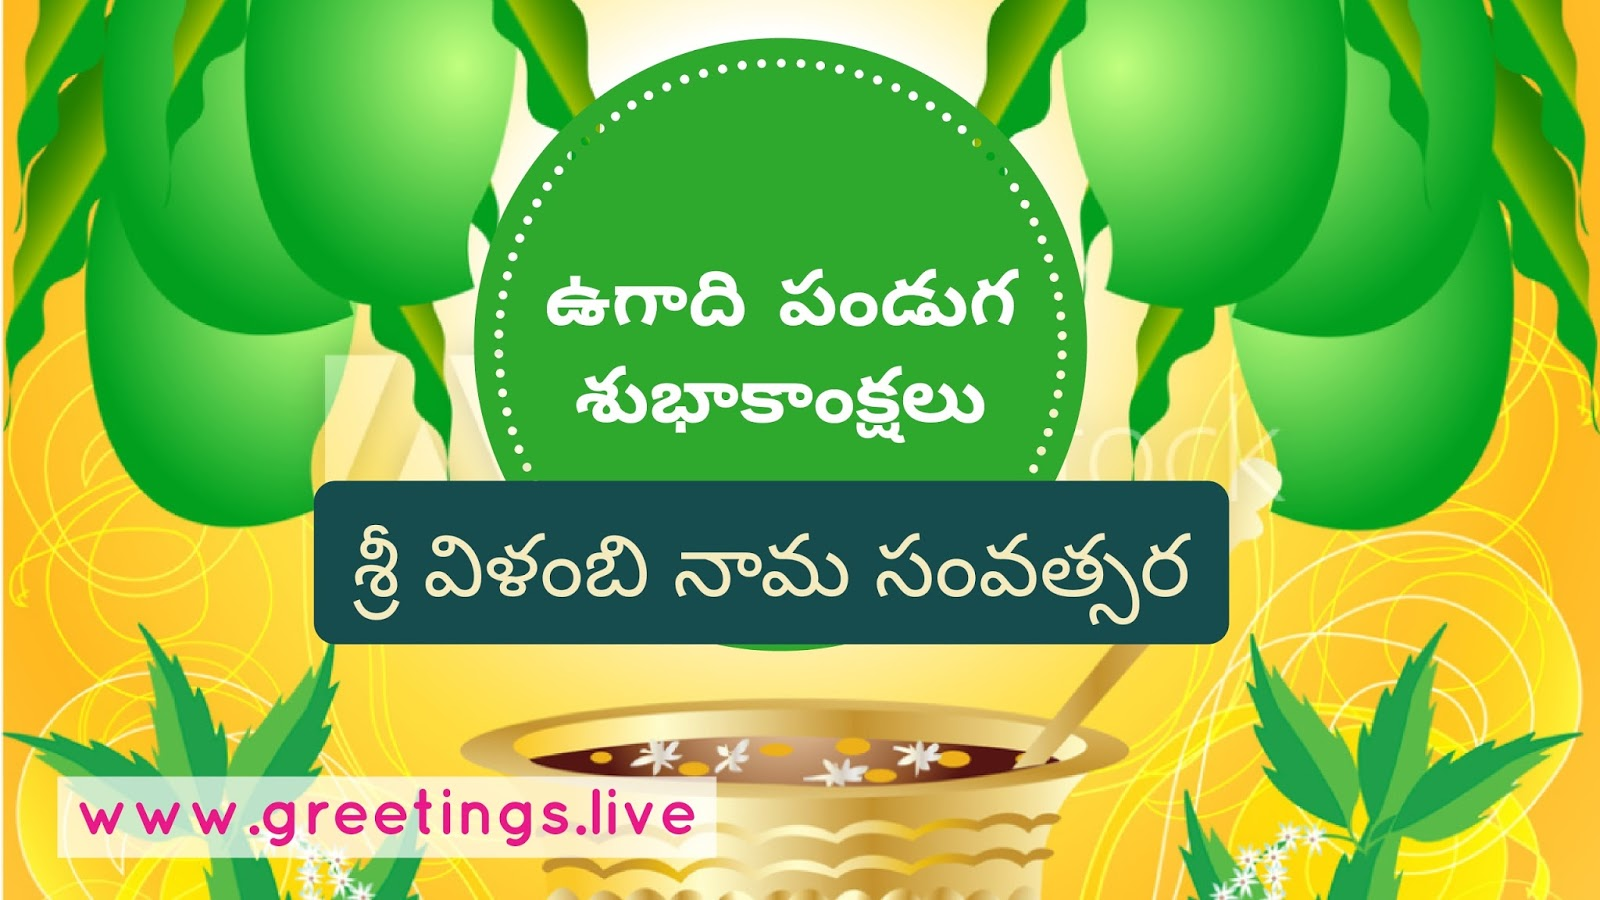 Greetingsve hd images love smile birthday wishes free download 2018 sree vilambi nama samvatsara ugadi festival greetings in telugu language kristyandbryce Images